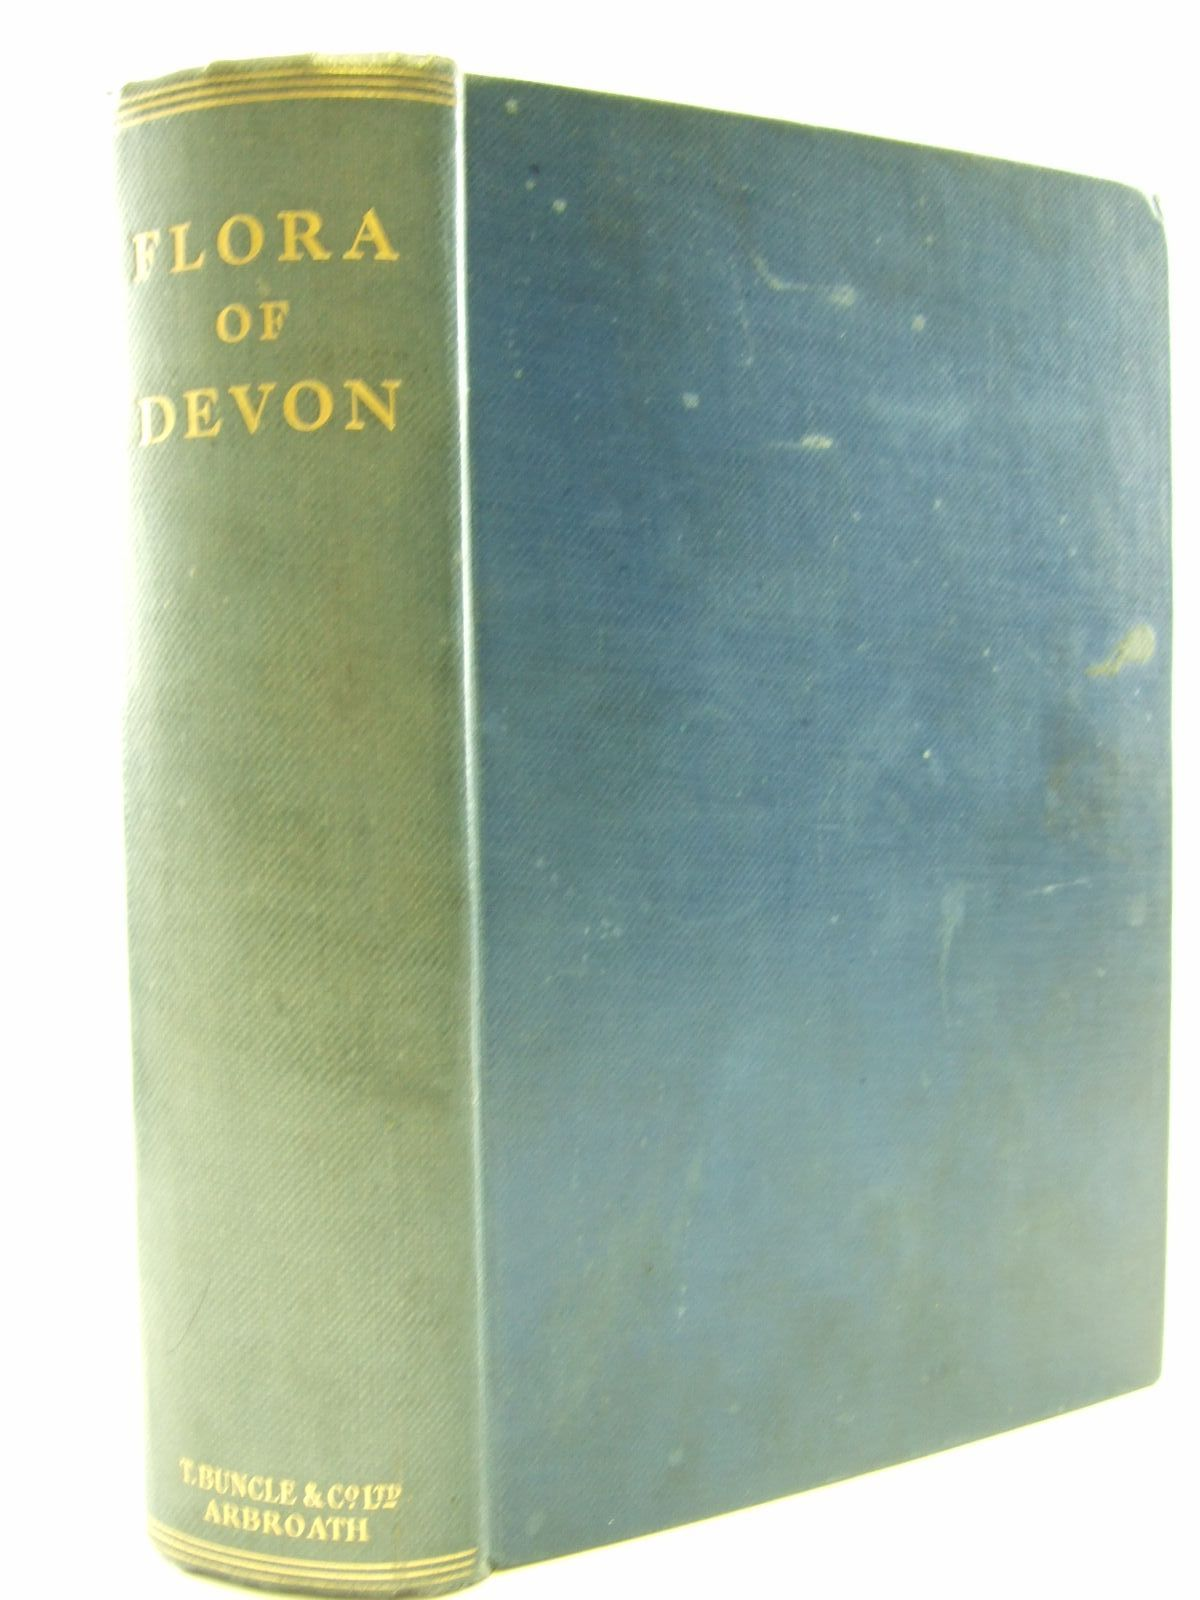 Photo of FLORA OF DEVON written by Martin, W. Keble published by T. Buncle & Co. Ltd. (STOCK CODE: 1206667)  for sale by Stella & Rose's Books